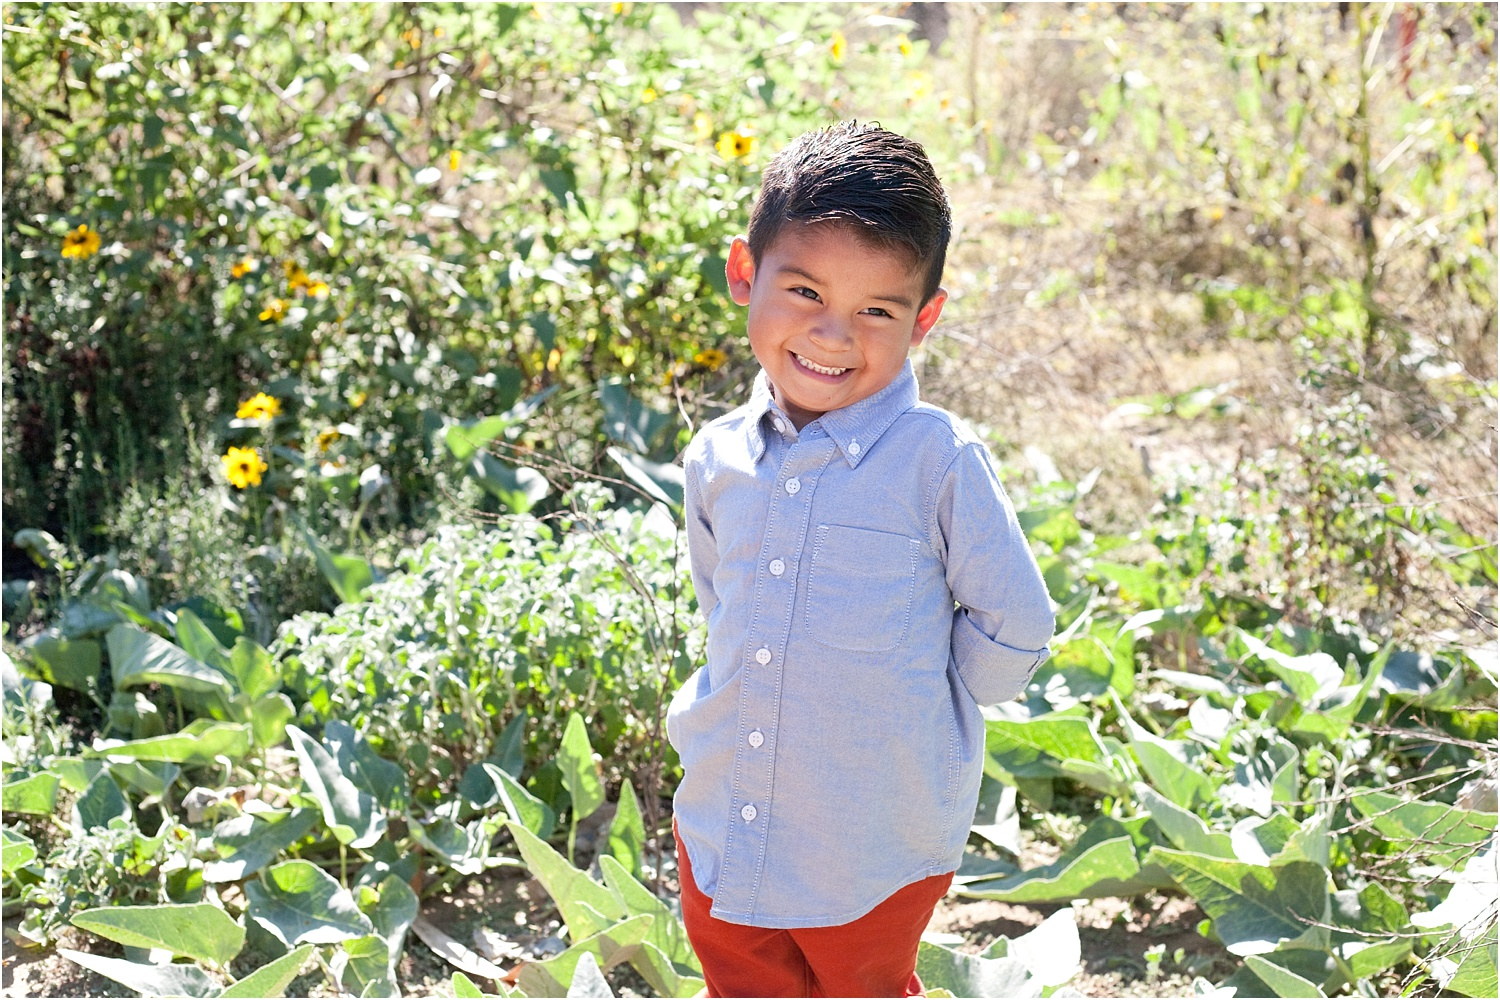 smiling boy in a field - How to do Portrait photography in Bright Midday Sun.